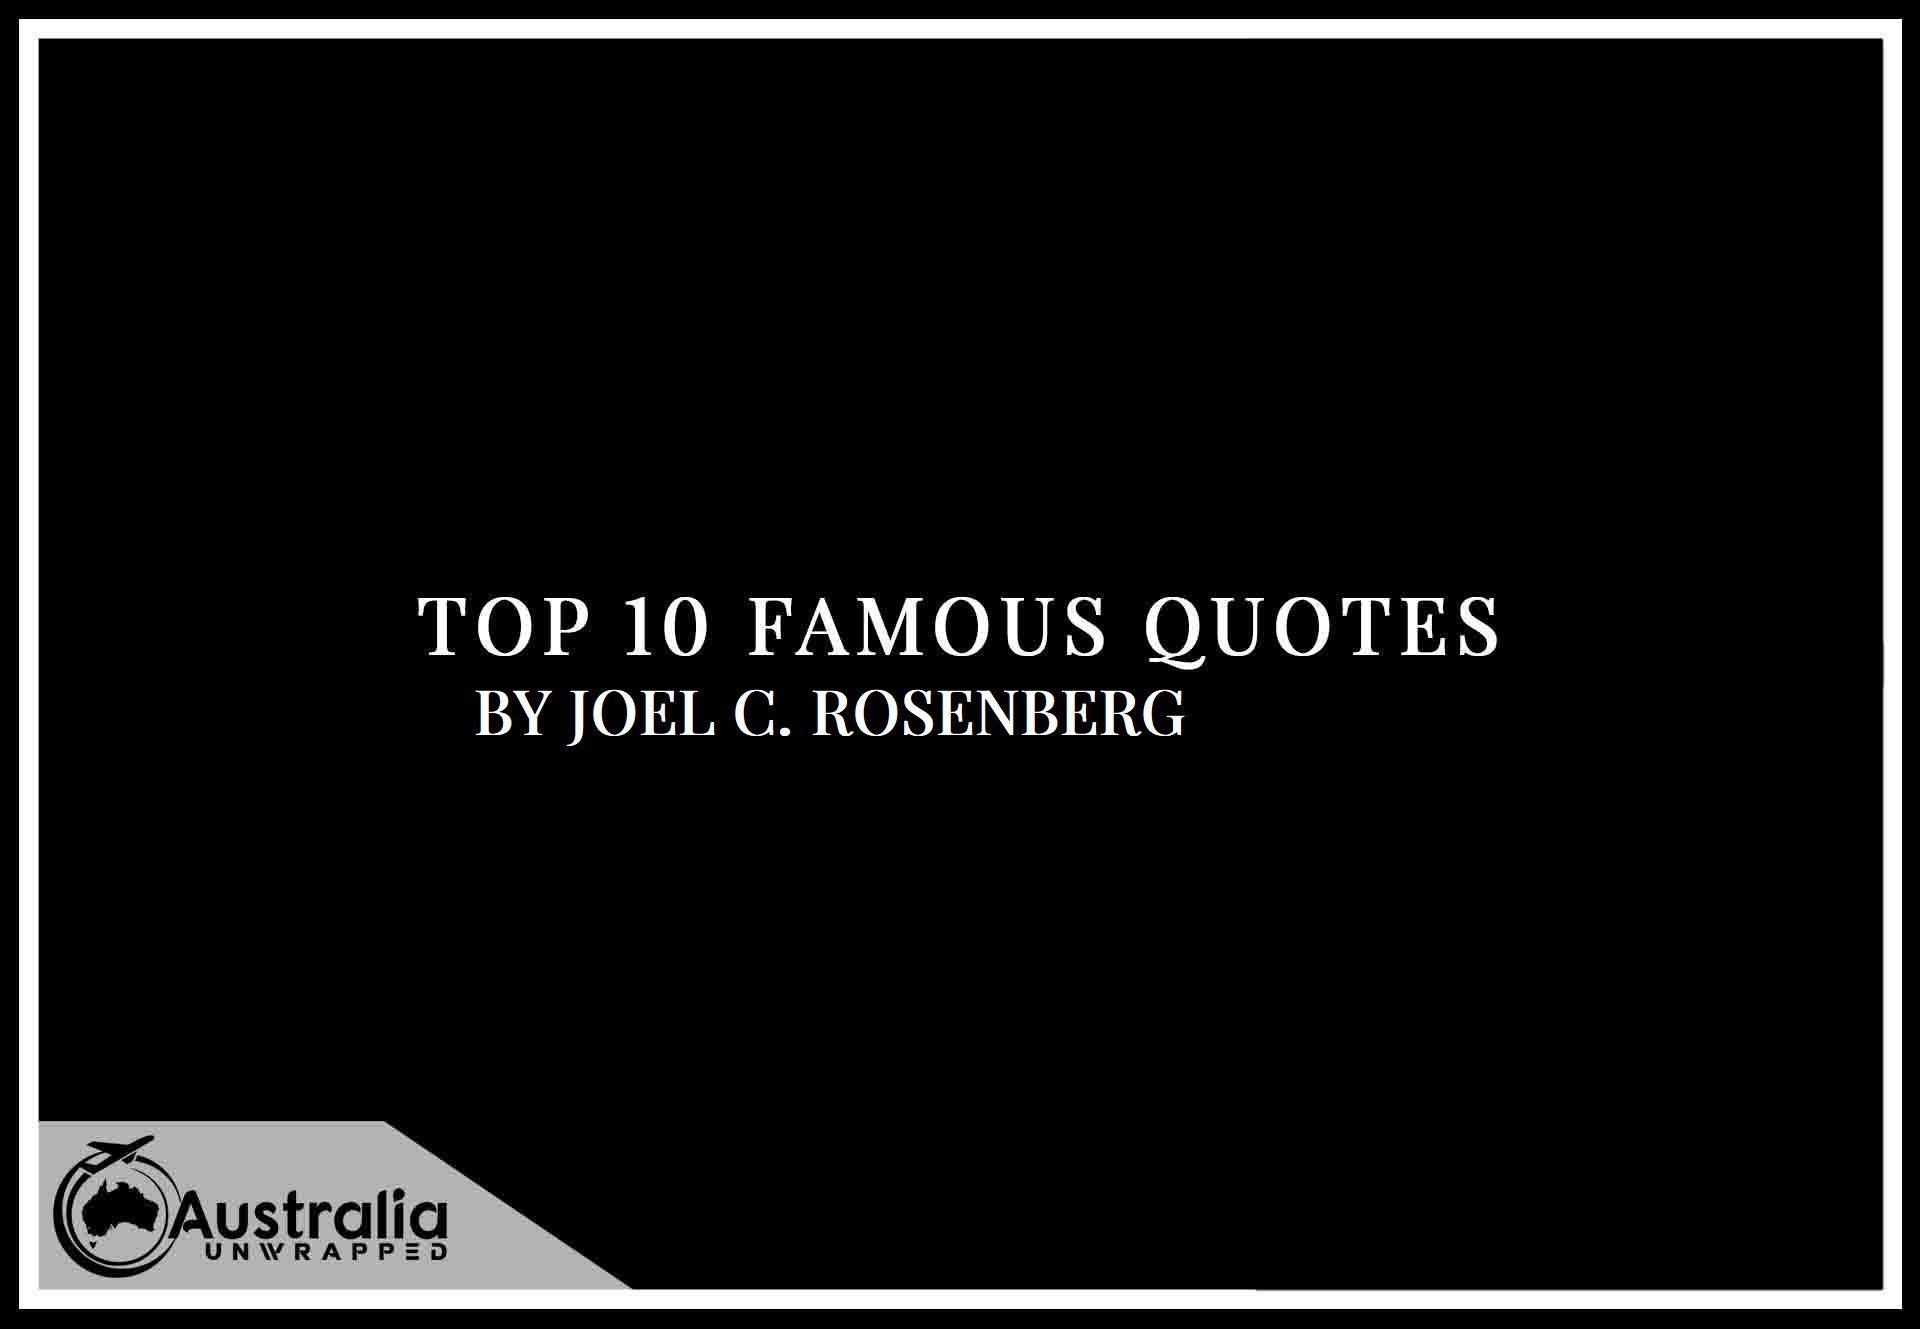 Top 10 Famous Quotes by Author Joel C. Rosenberg